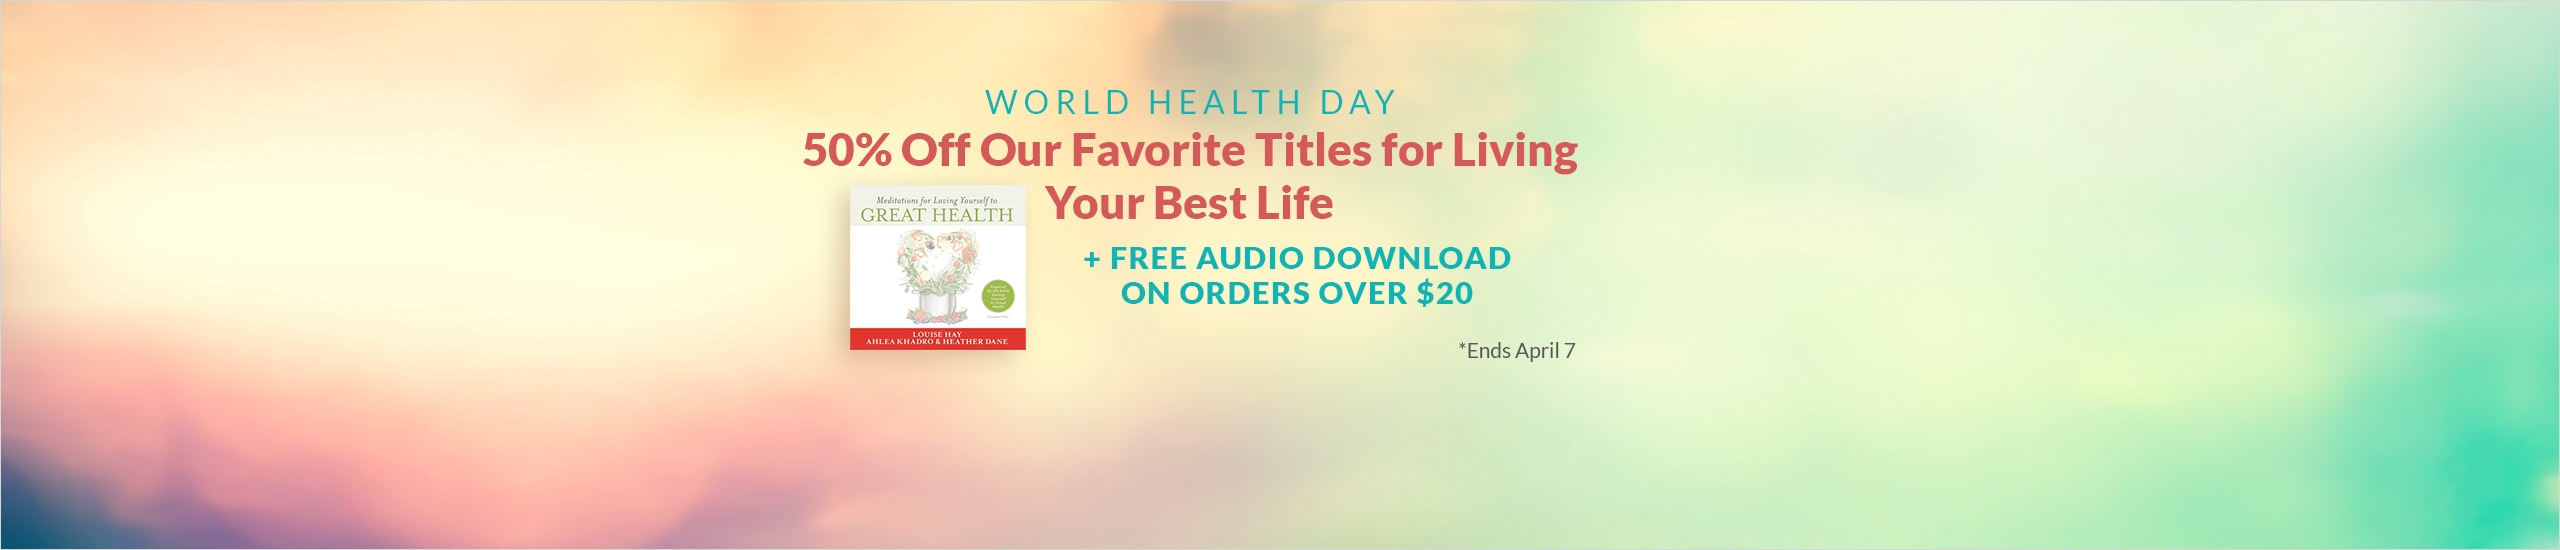 2560x550 World Health Day v2 - Hay House sale!; 50% off sale during World Health Day 2018 ( 5th to 7th April)